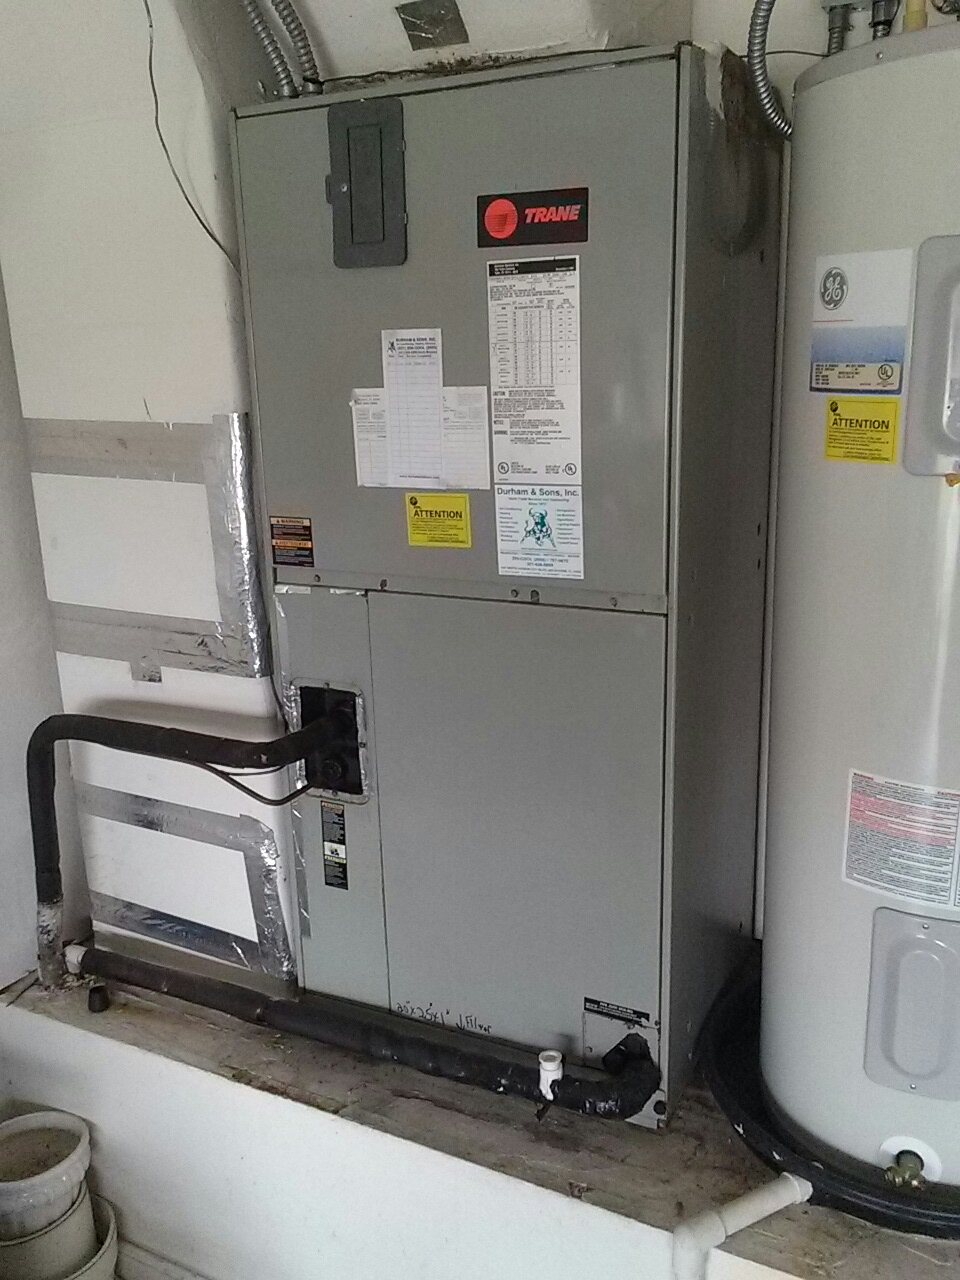 Merritt Island, FL - maintenance on Trane/Goodman a.c. system